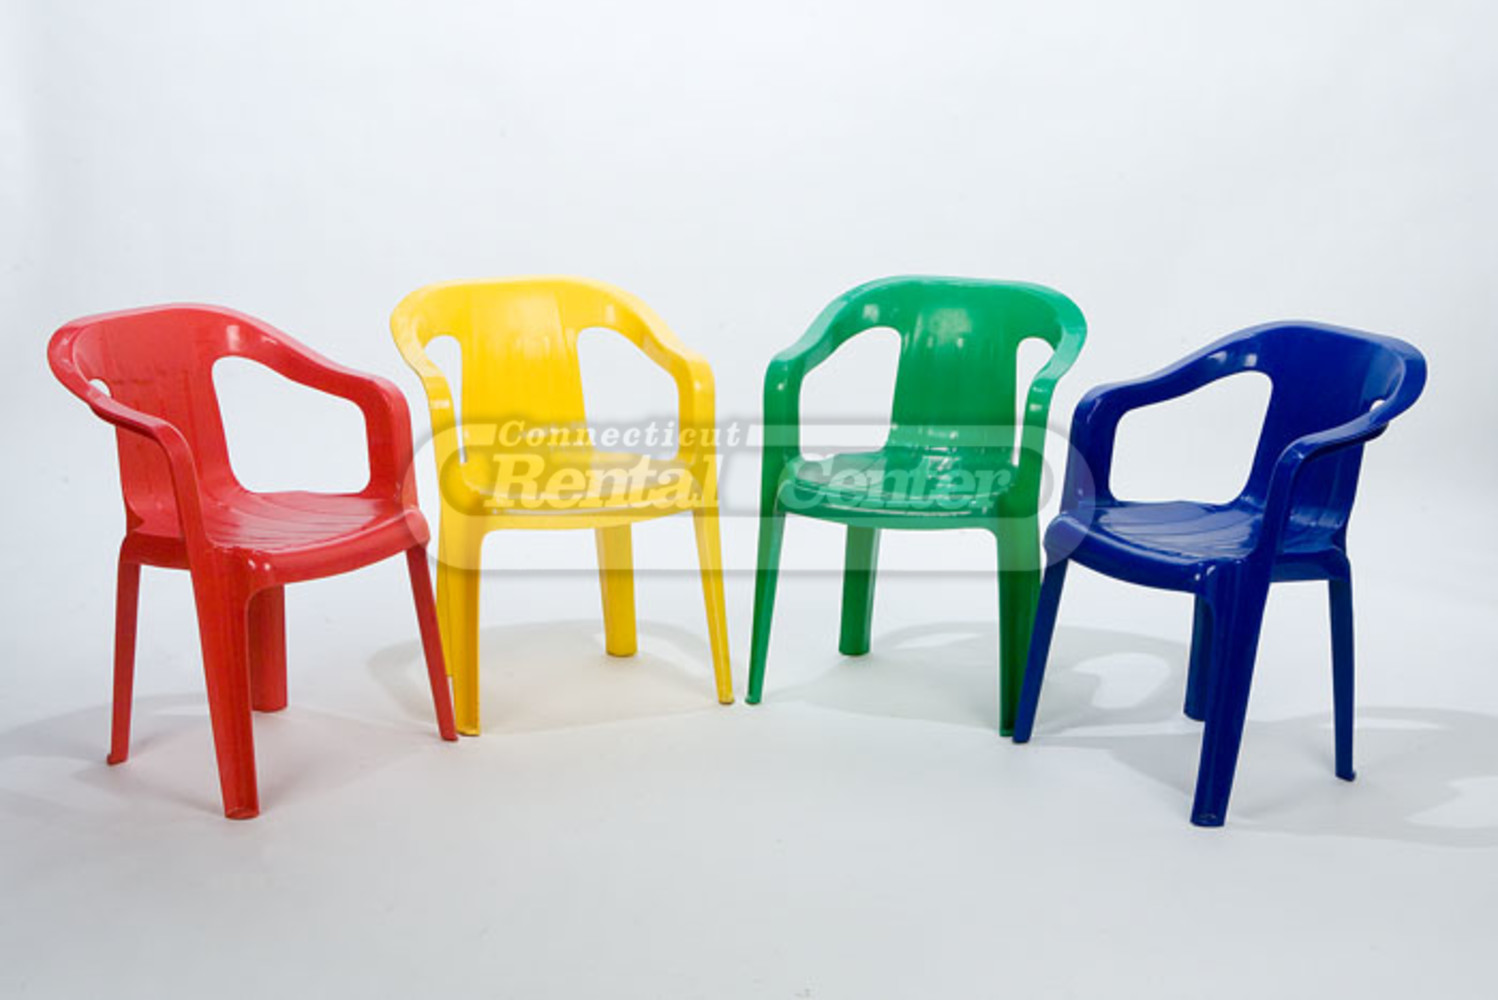 toddler chair plastic lumbar support for office chairs rent from ct rental center